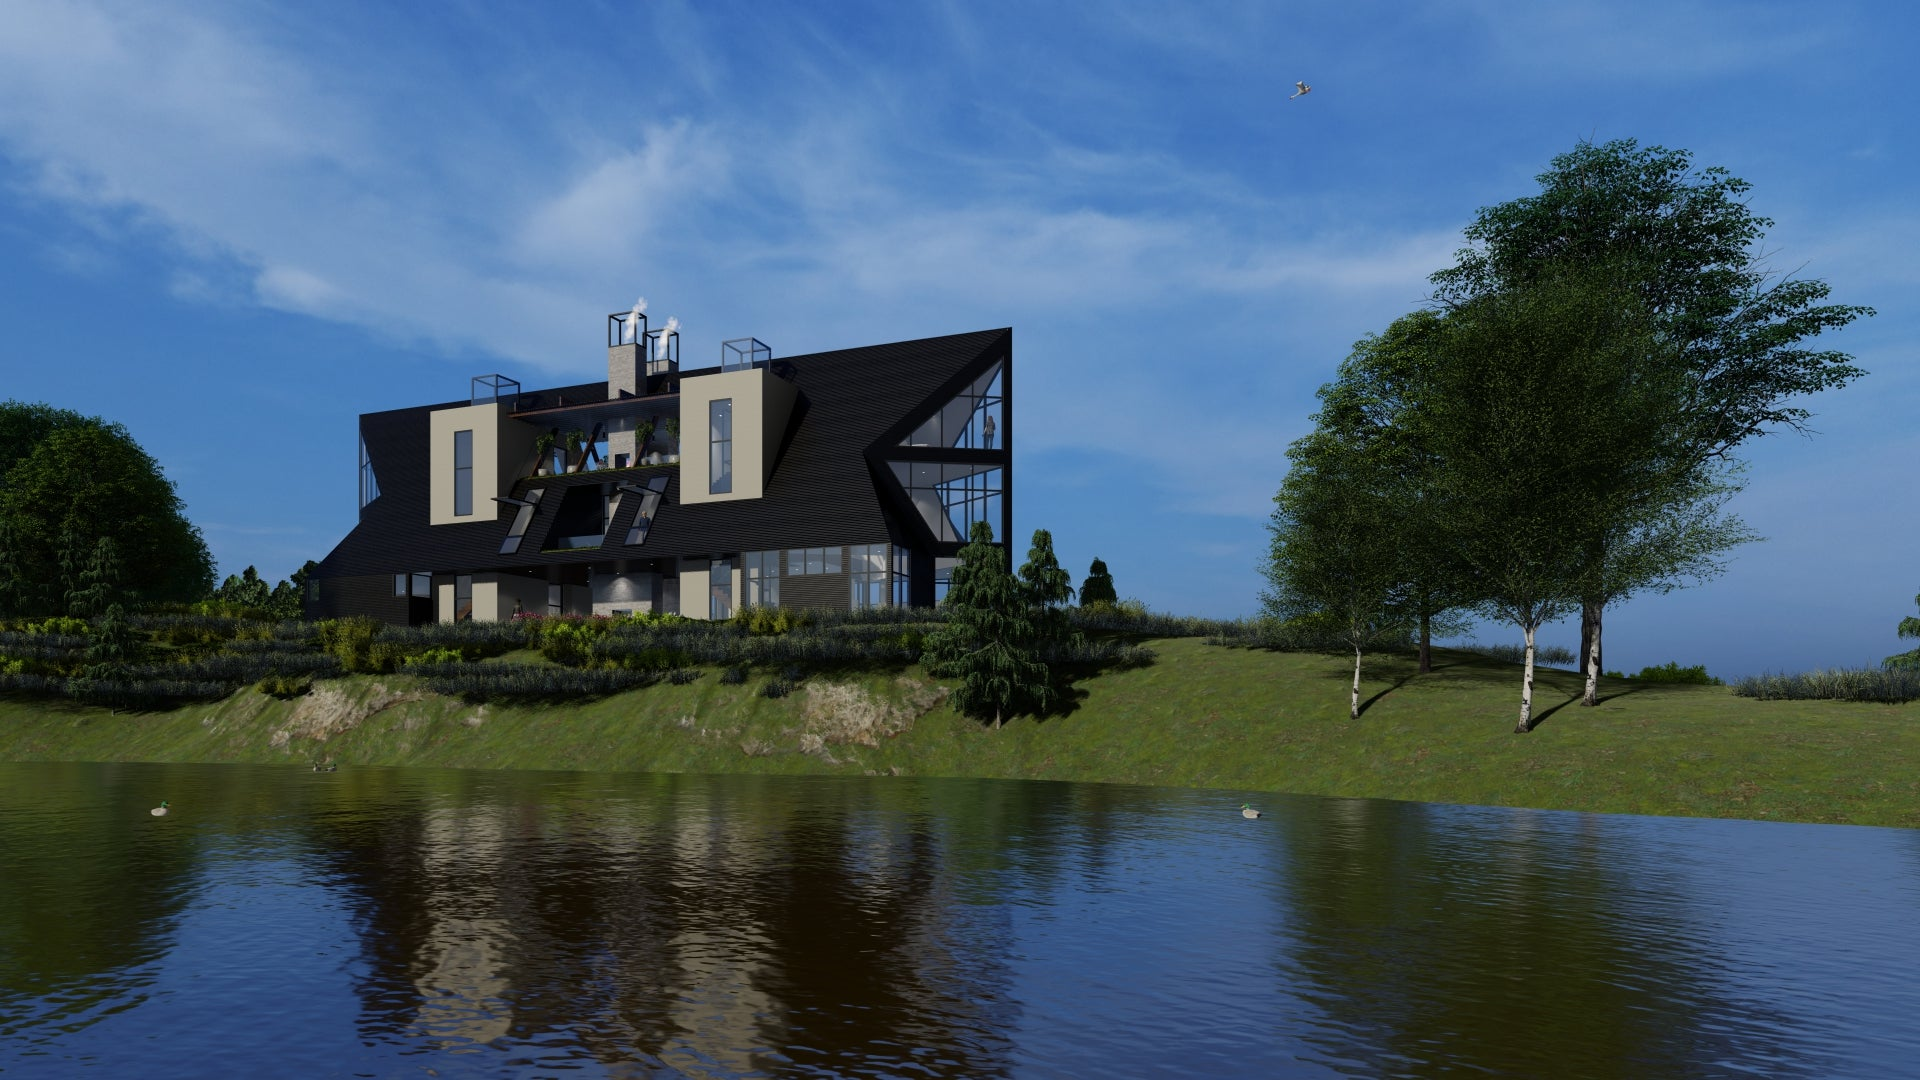 Loon House on the lake, designed by Akar Architectture.